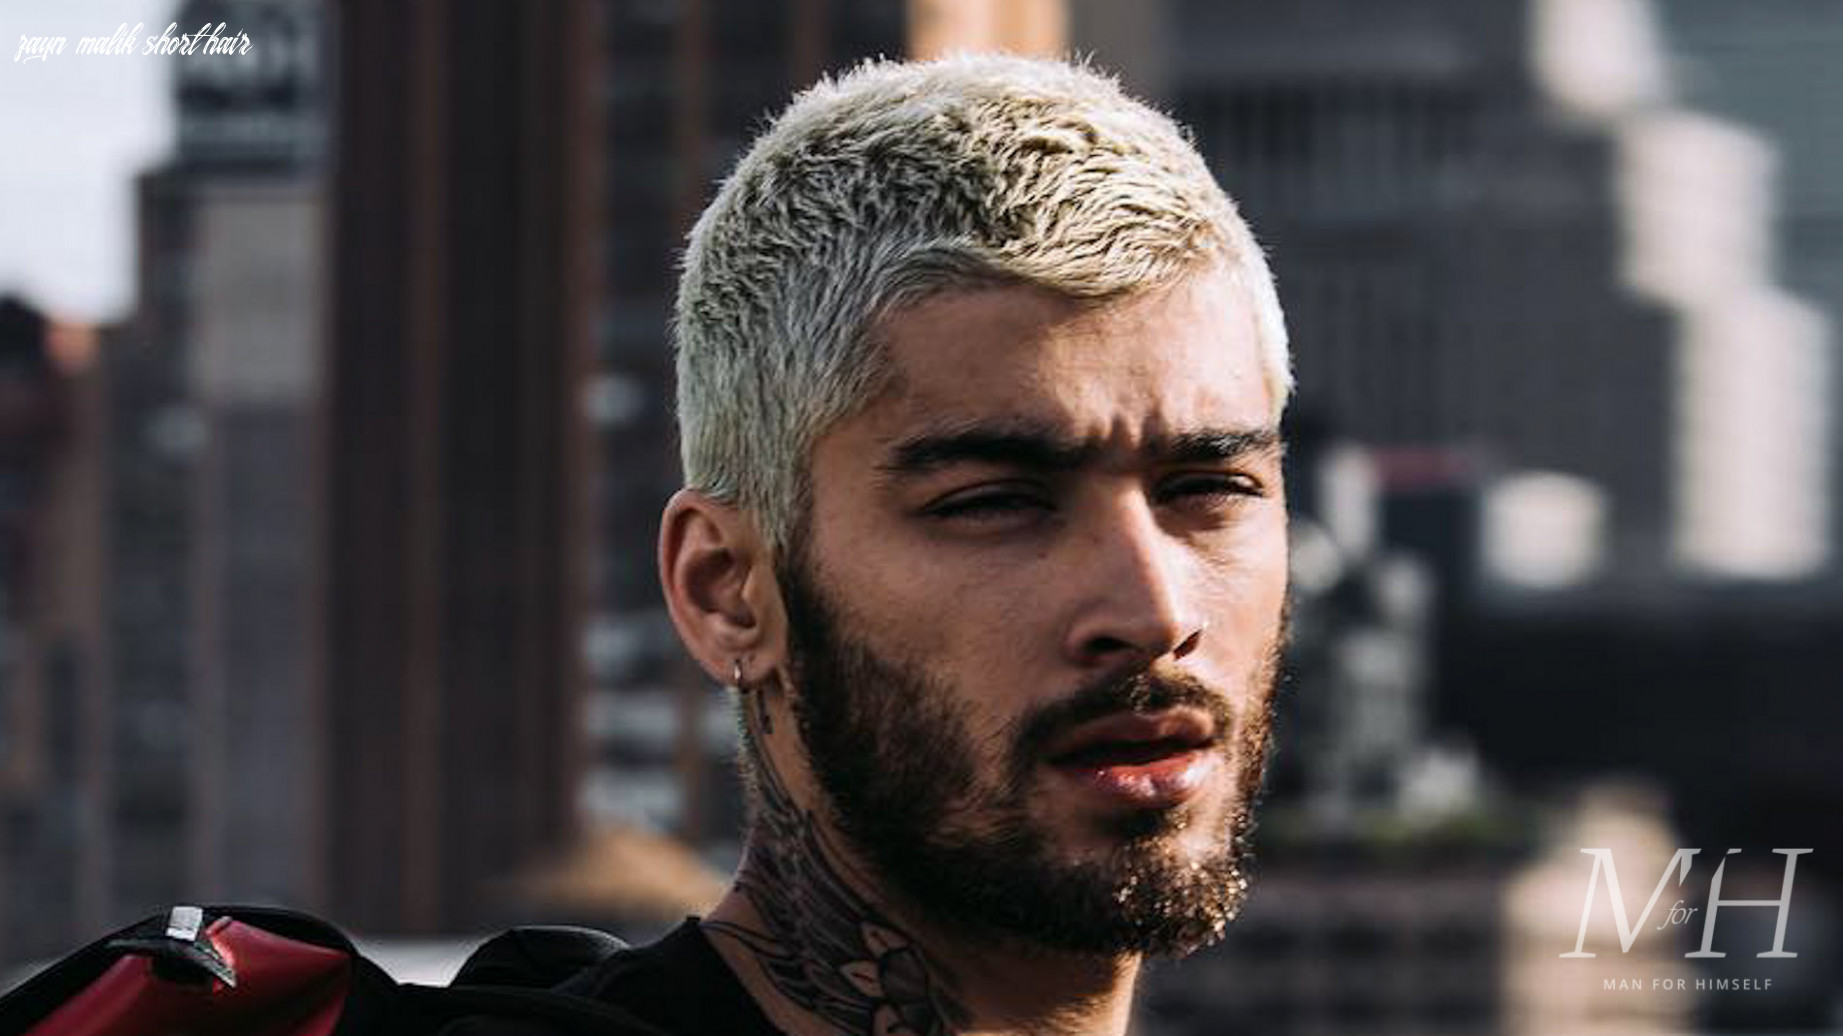 12 buzz cut hairstyles to try in 12 | man for himself zayn malik short hair